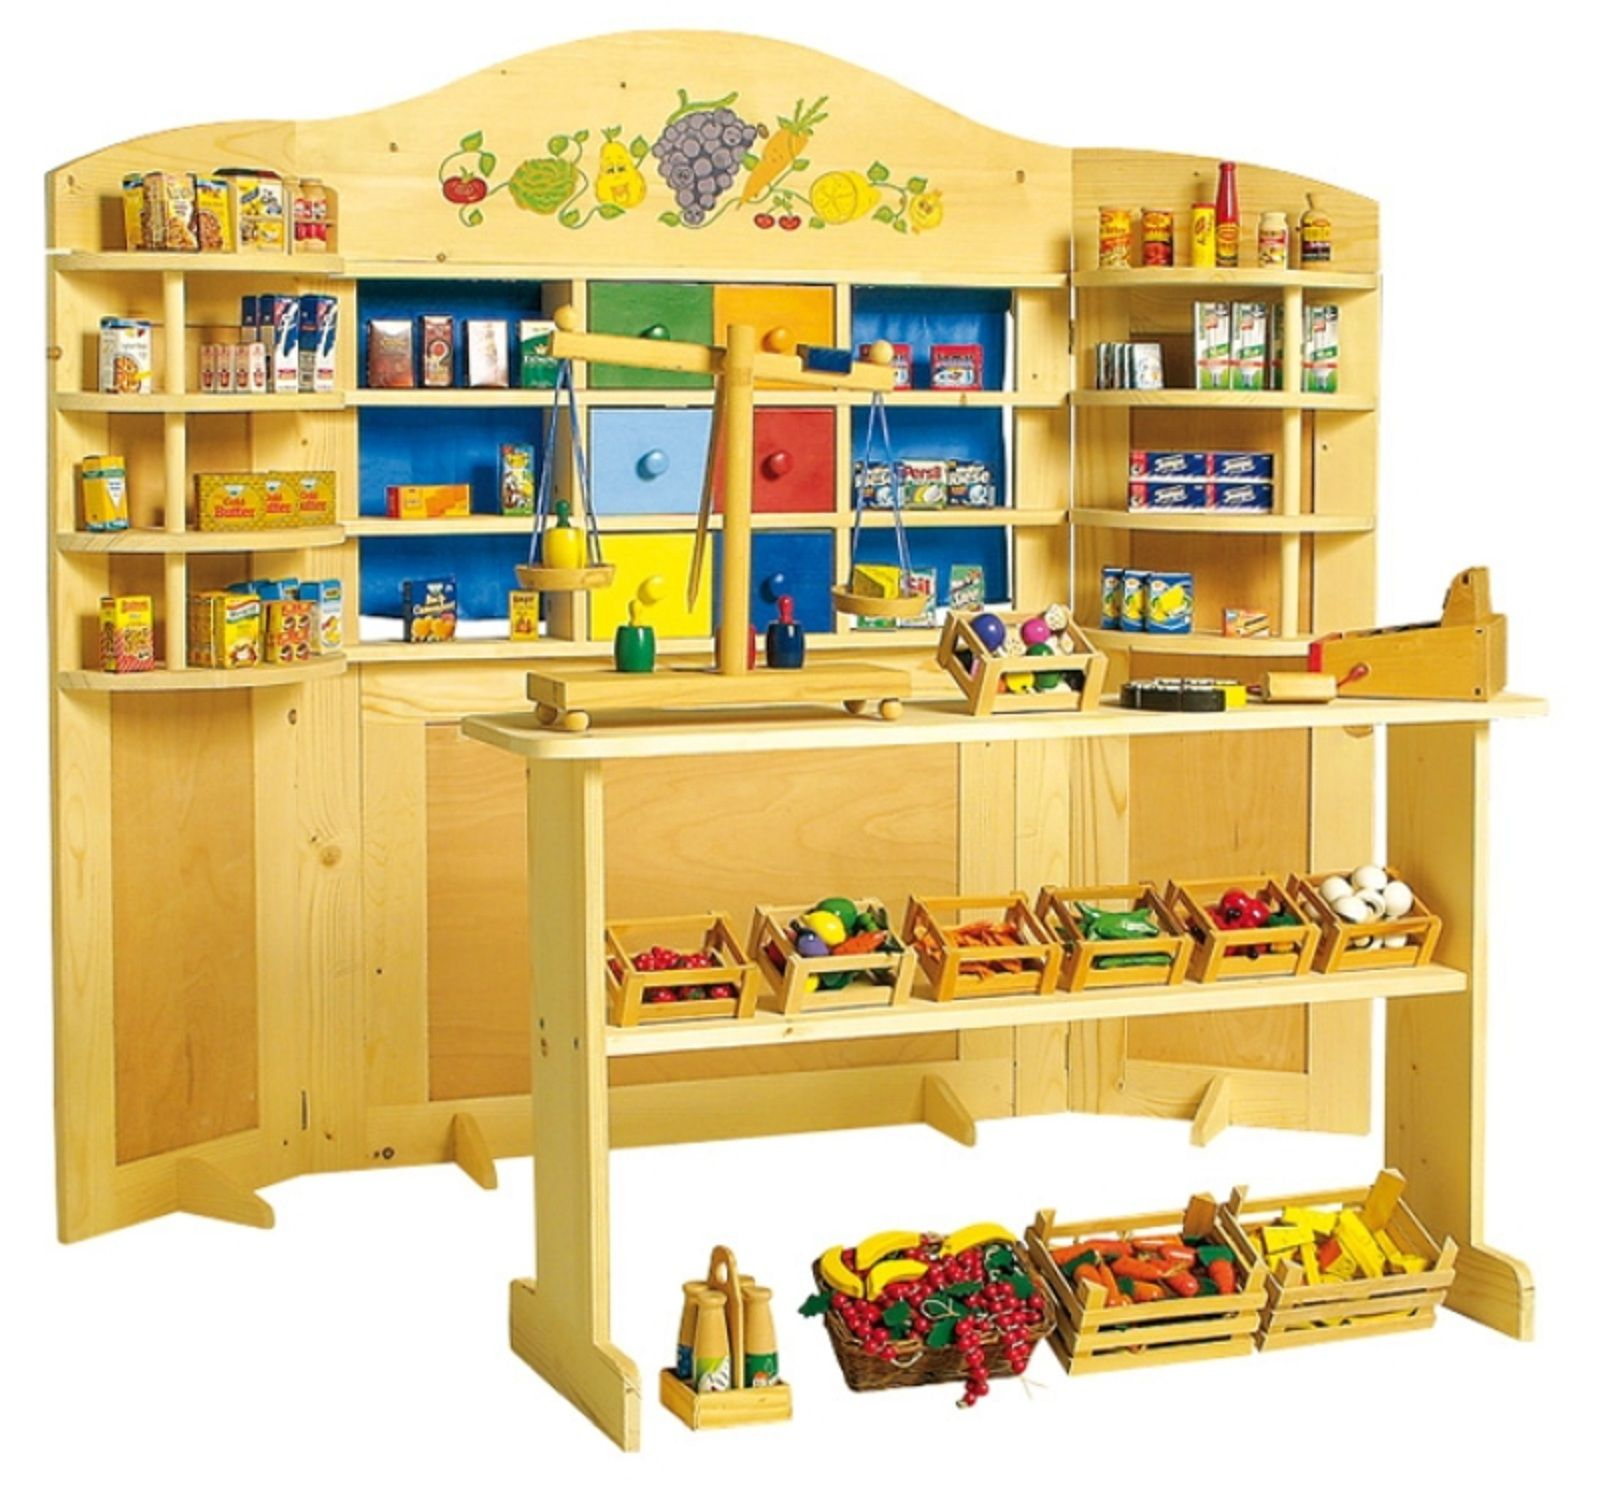 Children s Wooden Country Grocery Store